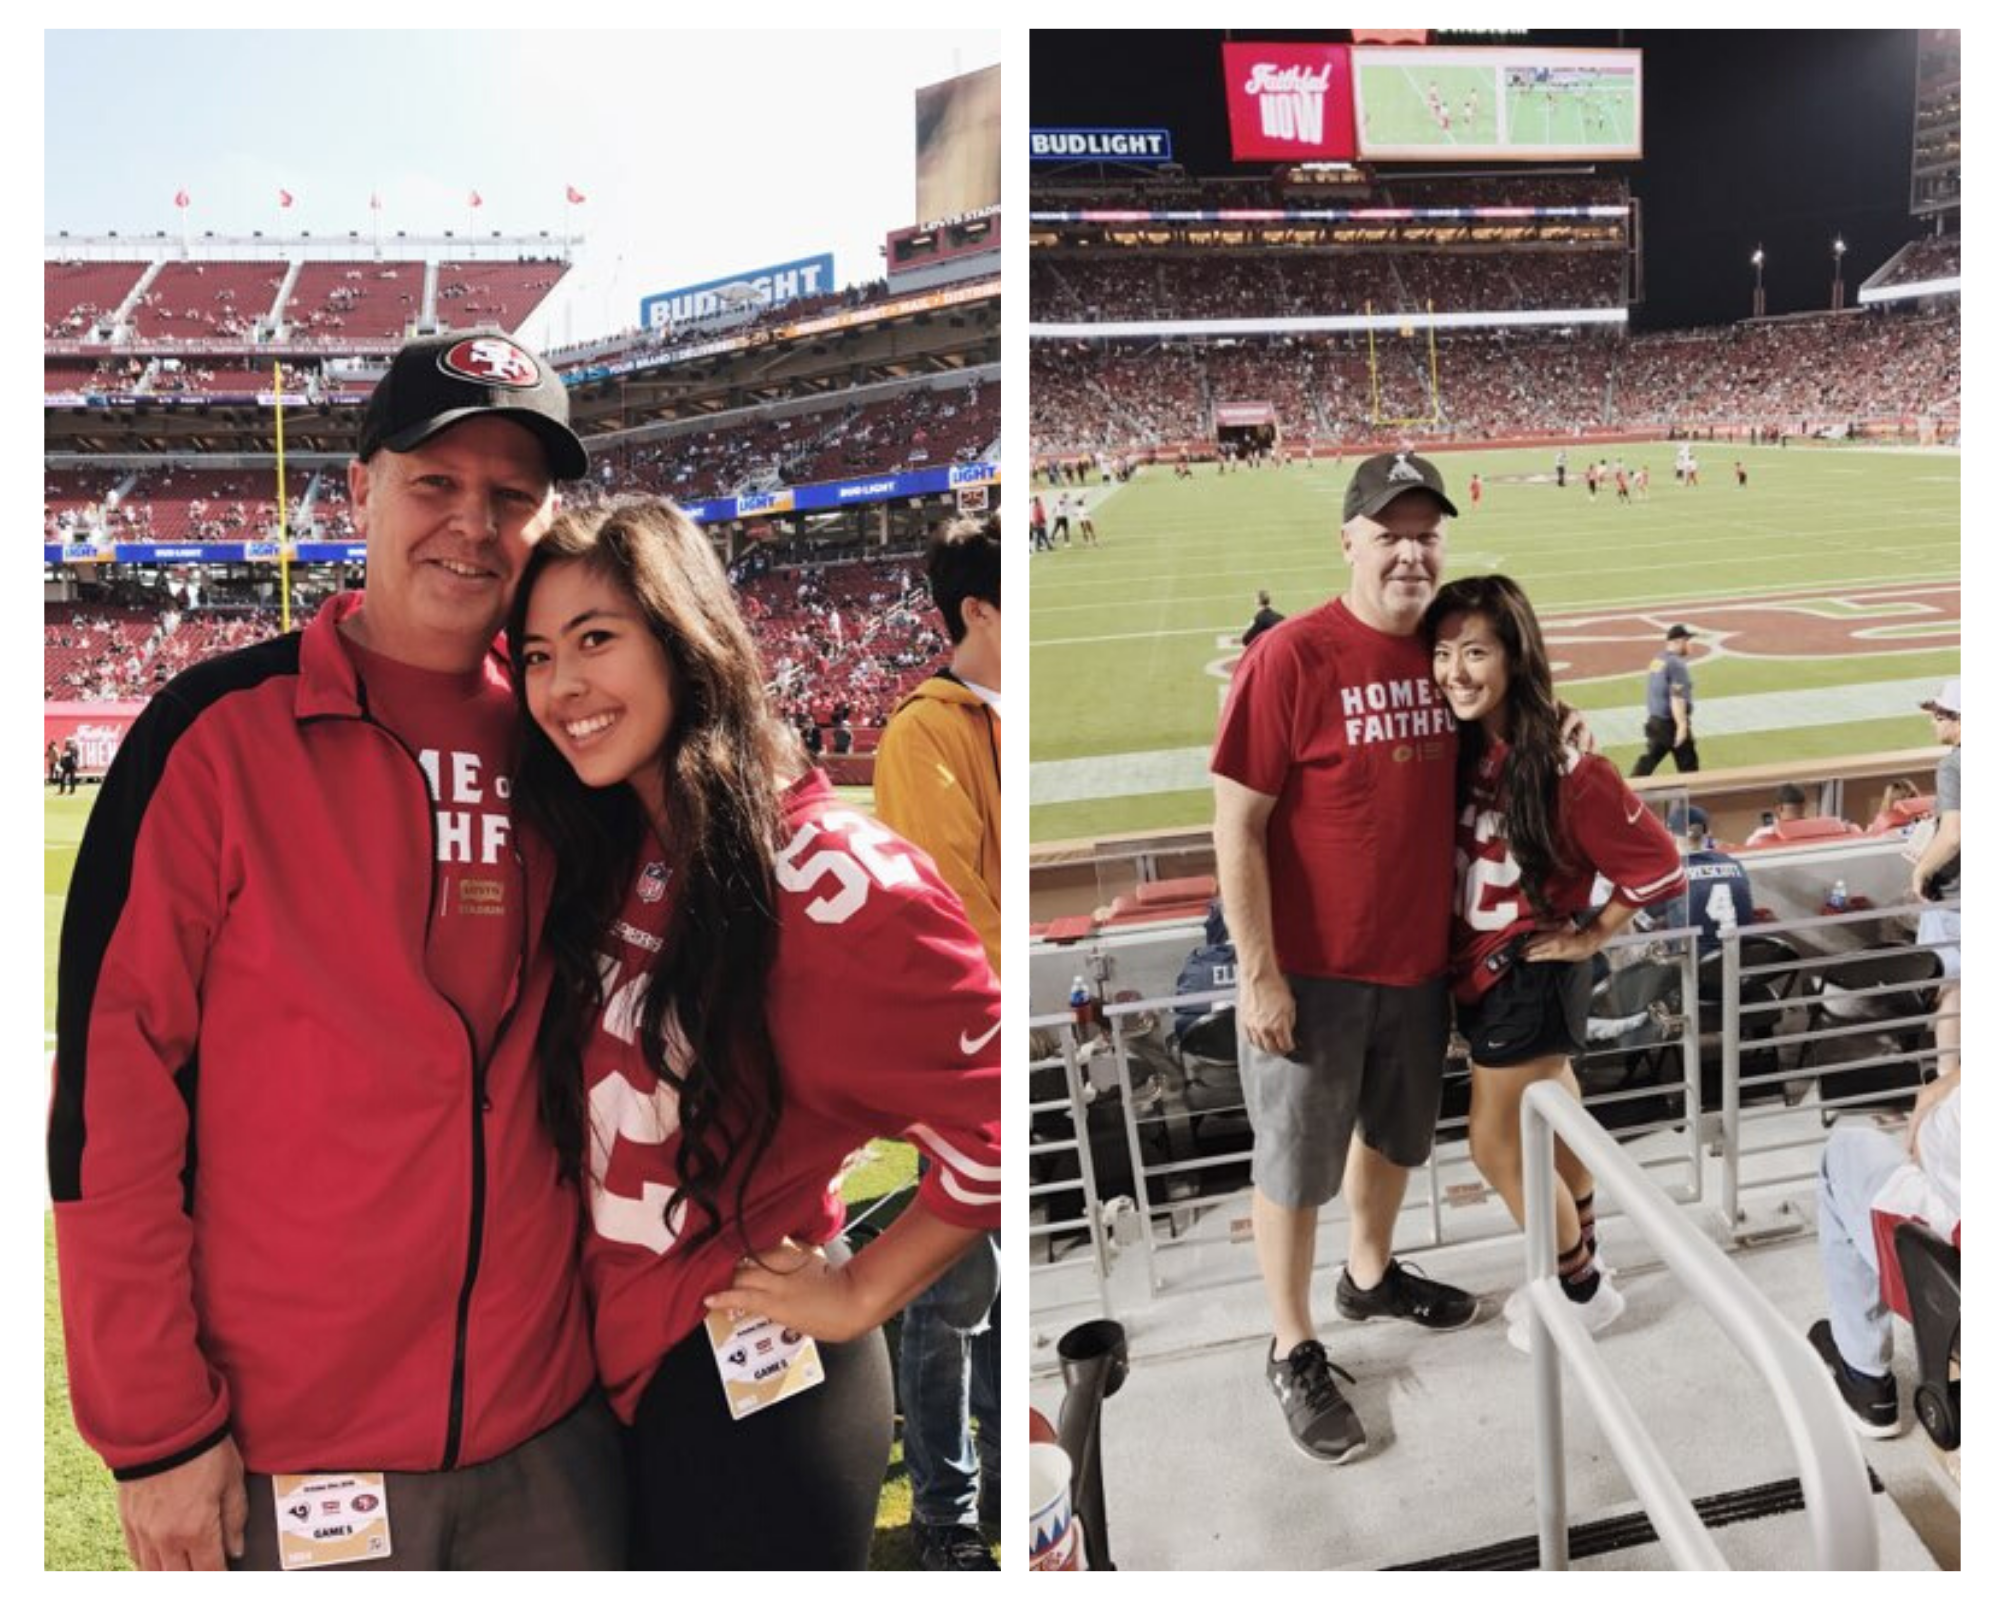 Anna and her dad at 49ers games photo 1